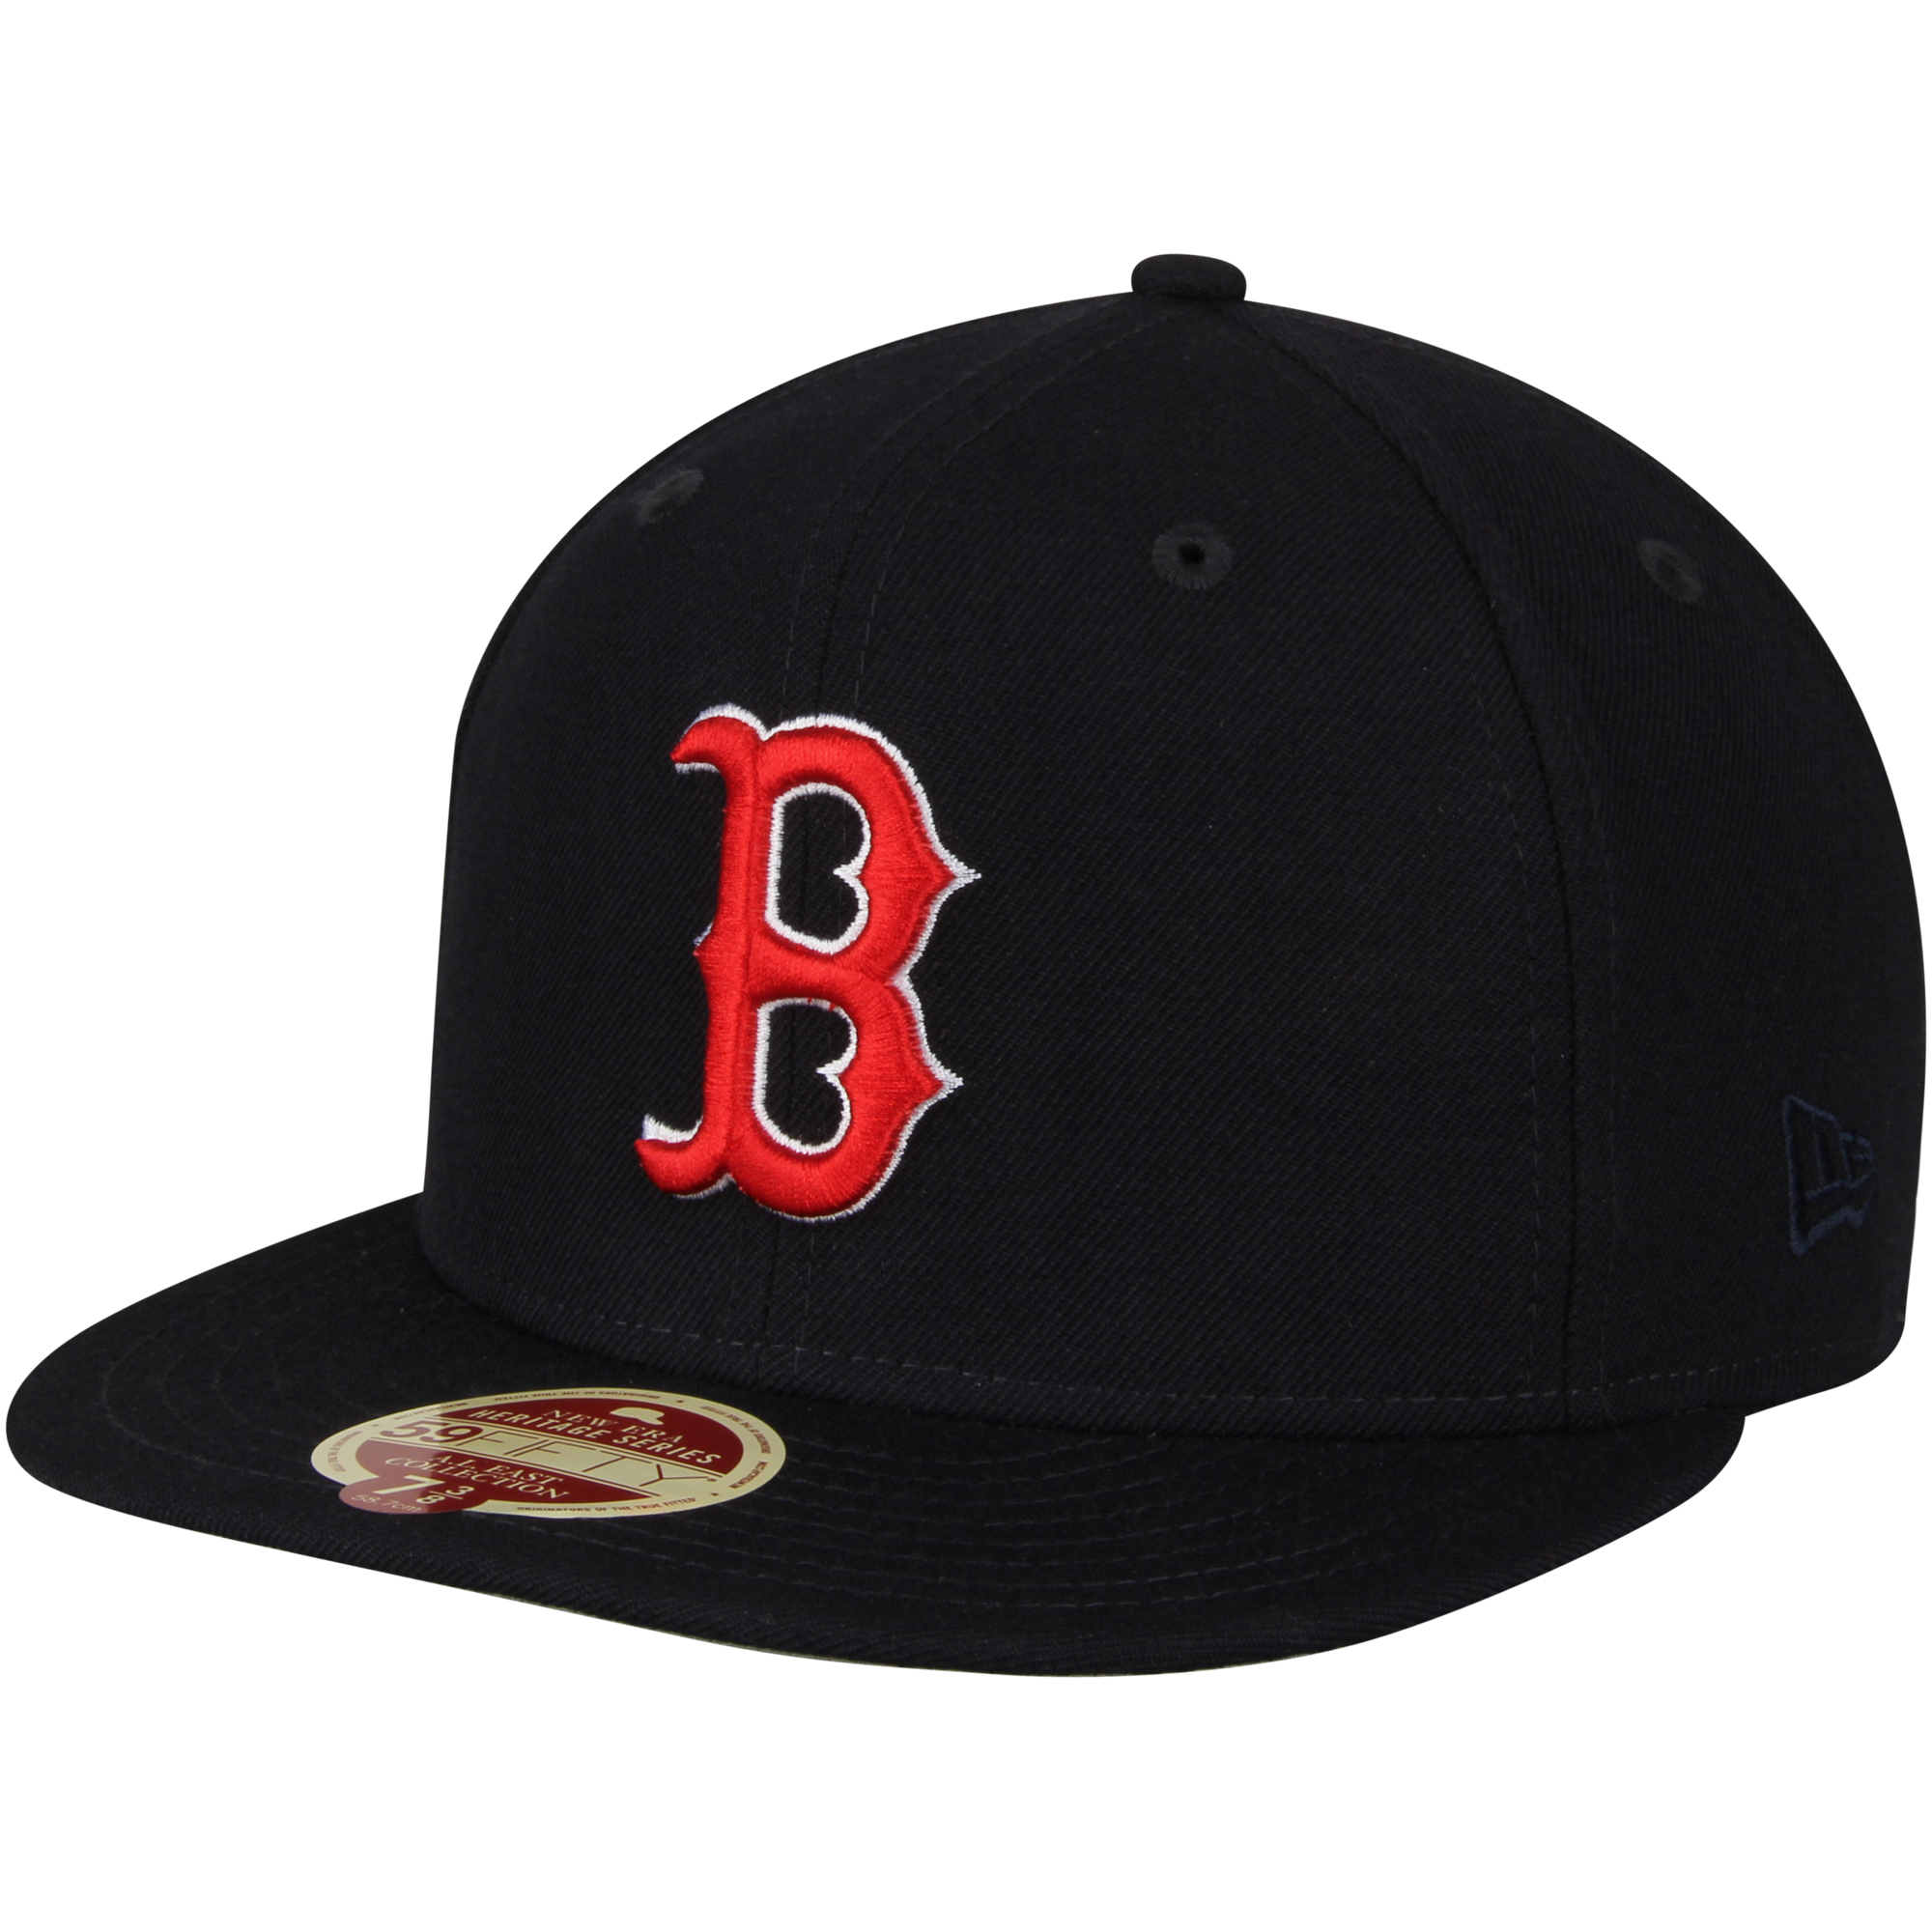 73bcd39efbf ... promo code for boston red sox new era american league east 59fifty  fitted hat navy 00611